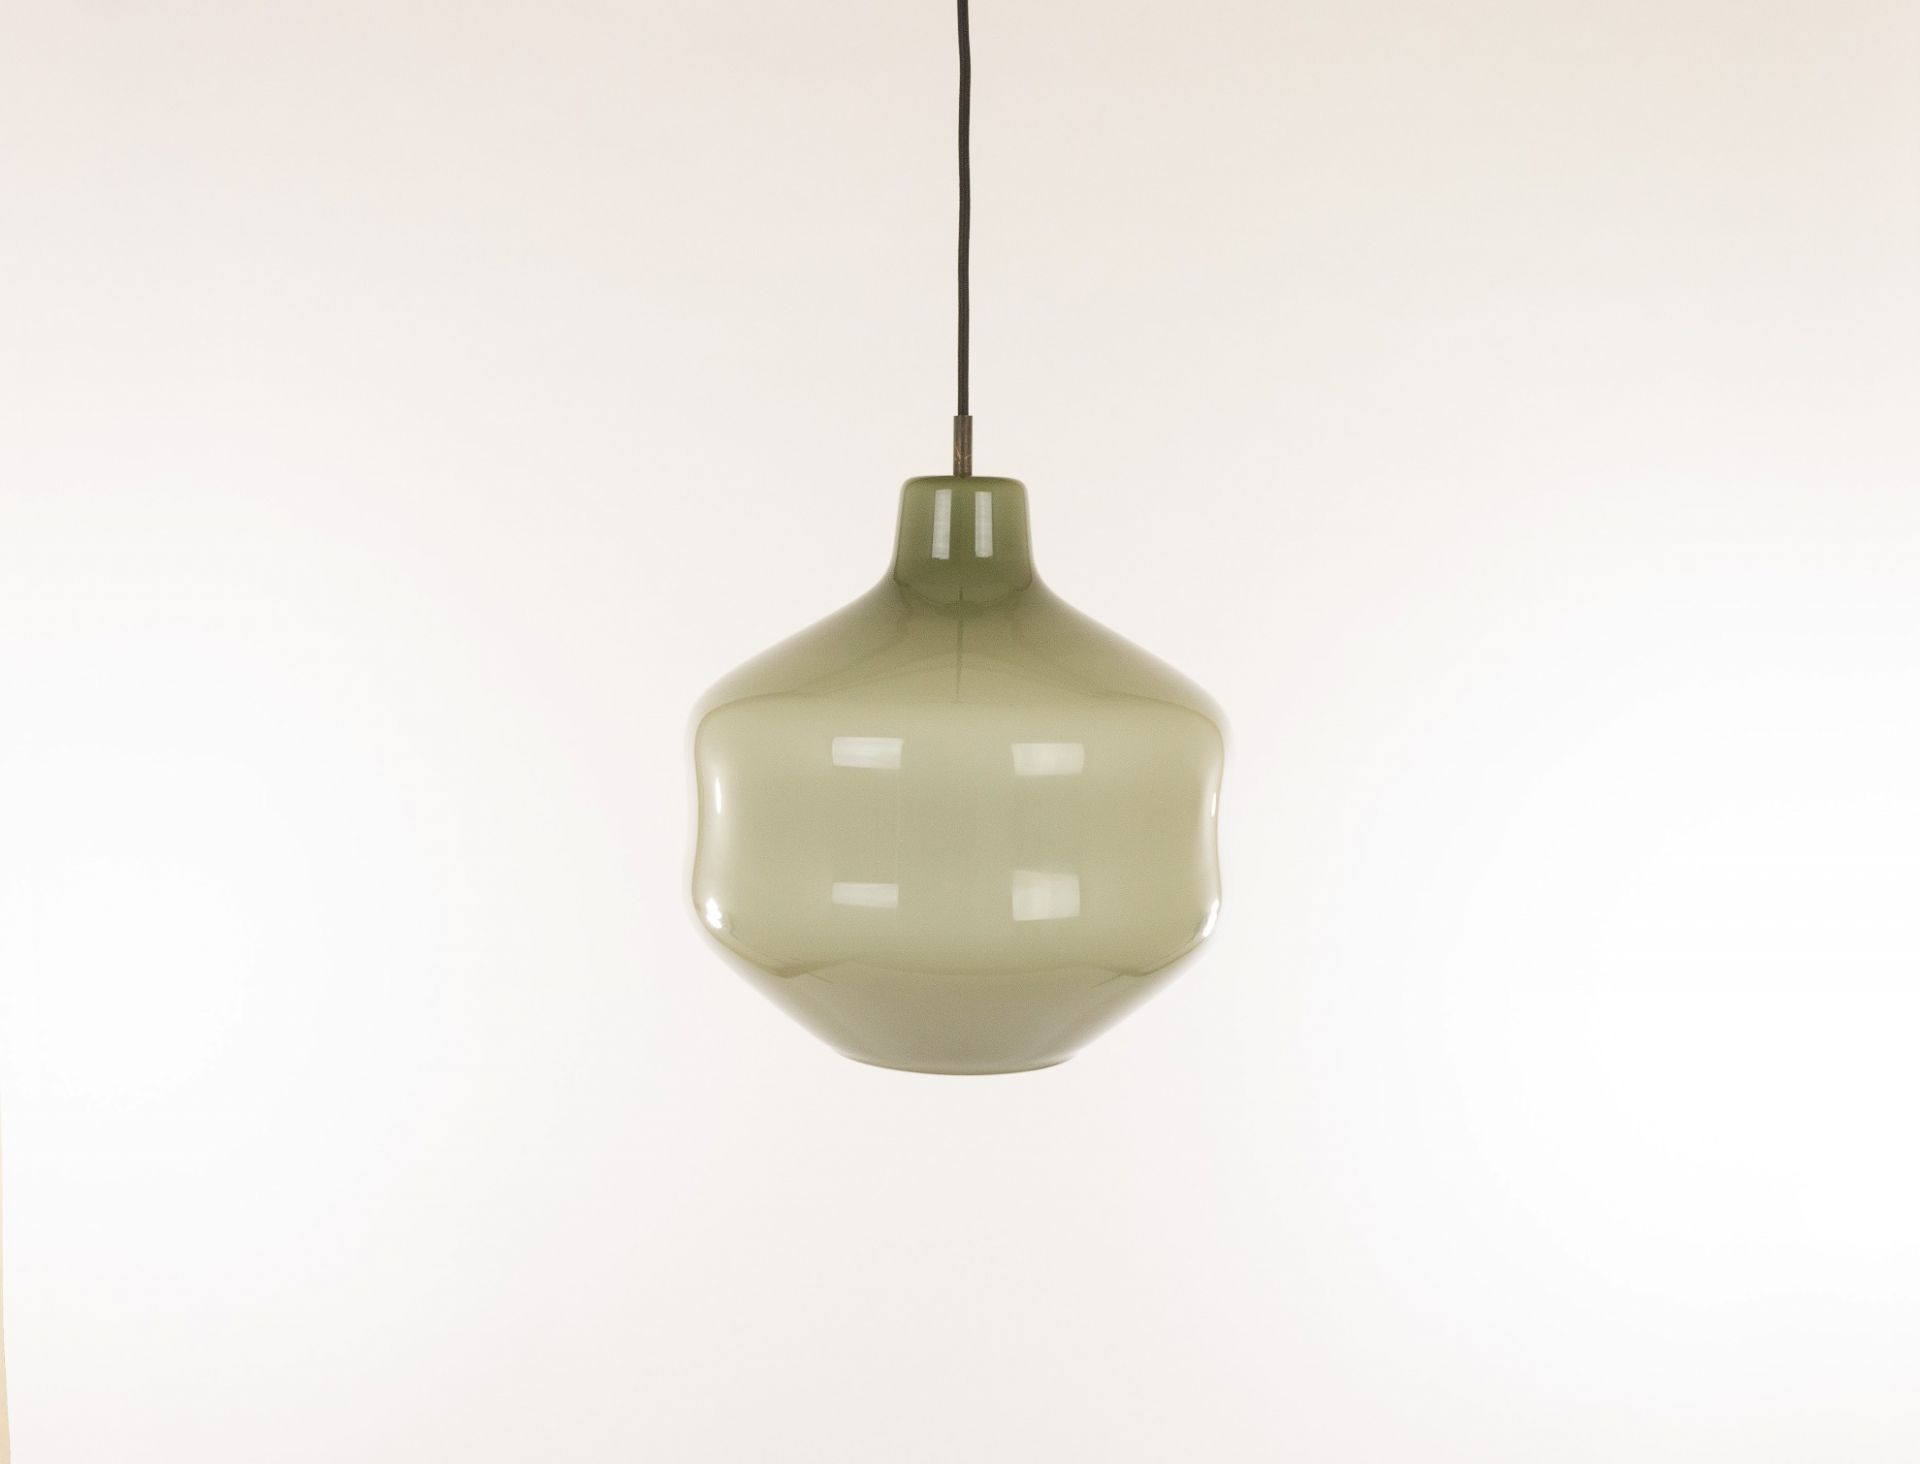 Grey hand-blown Murano glass pendant by Massimo Vignelli for Venini, 1950s